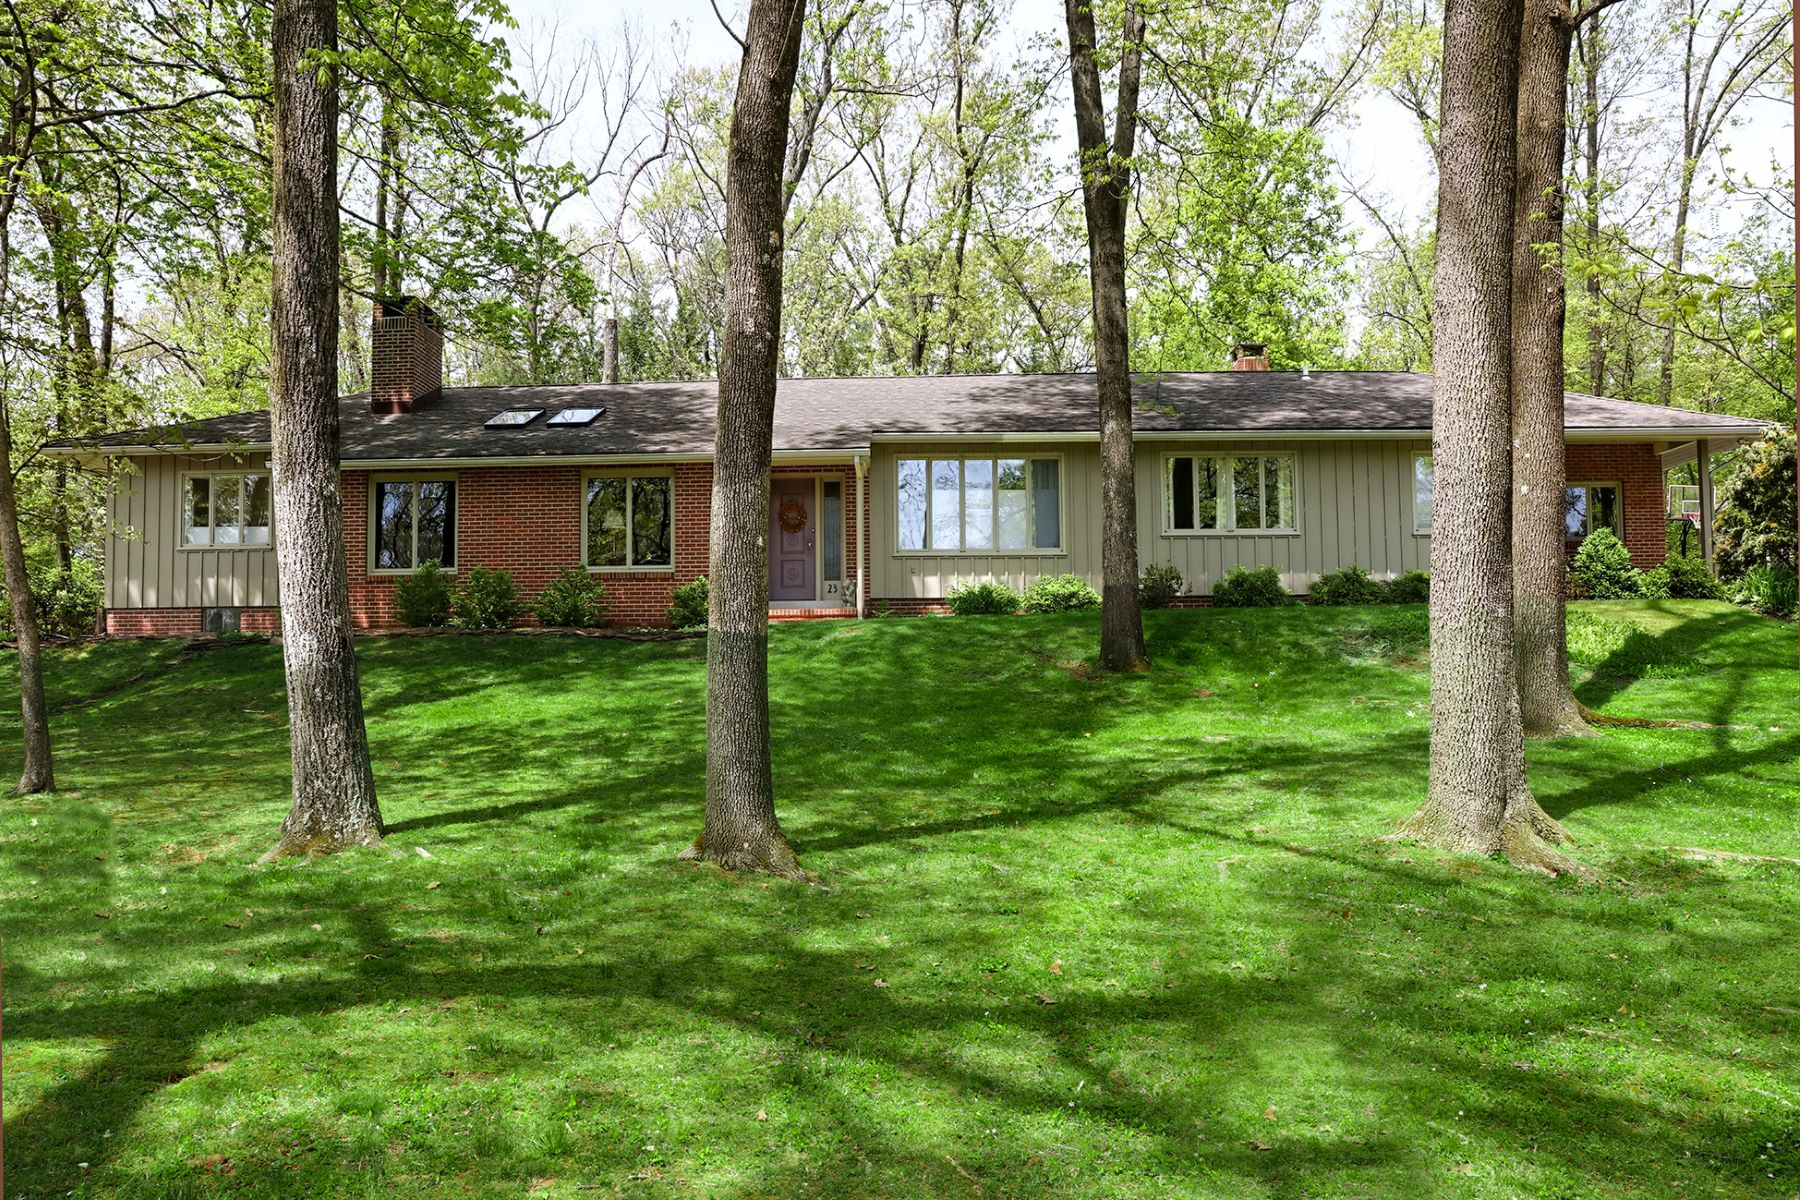 Single Level Living With Many Recent Updates 23 Forrest Blend Drive, Titusville, New Jersey 08560 Vereinigte Staaten